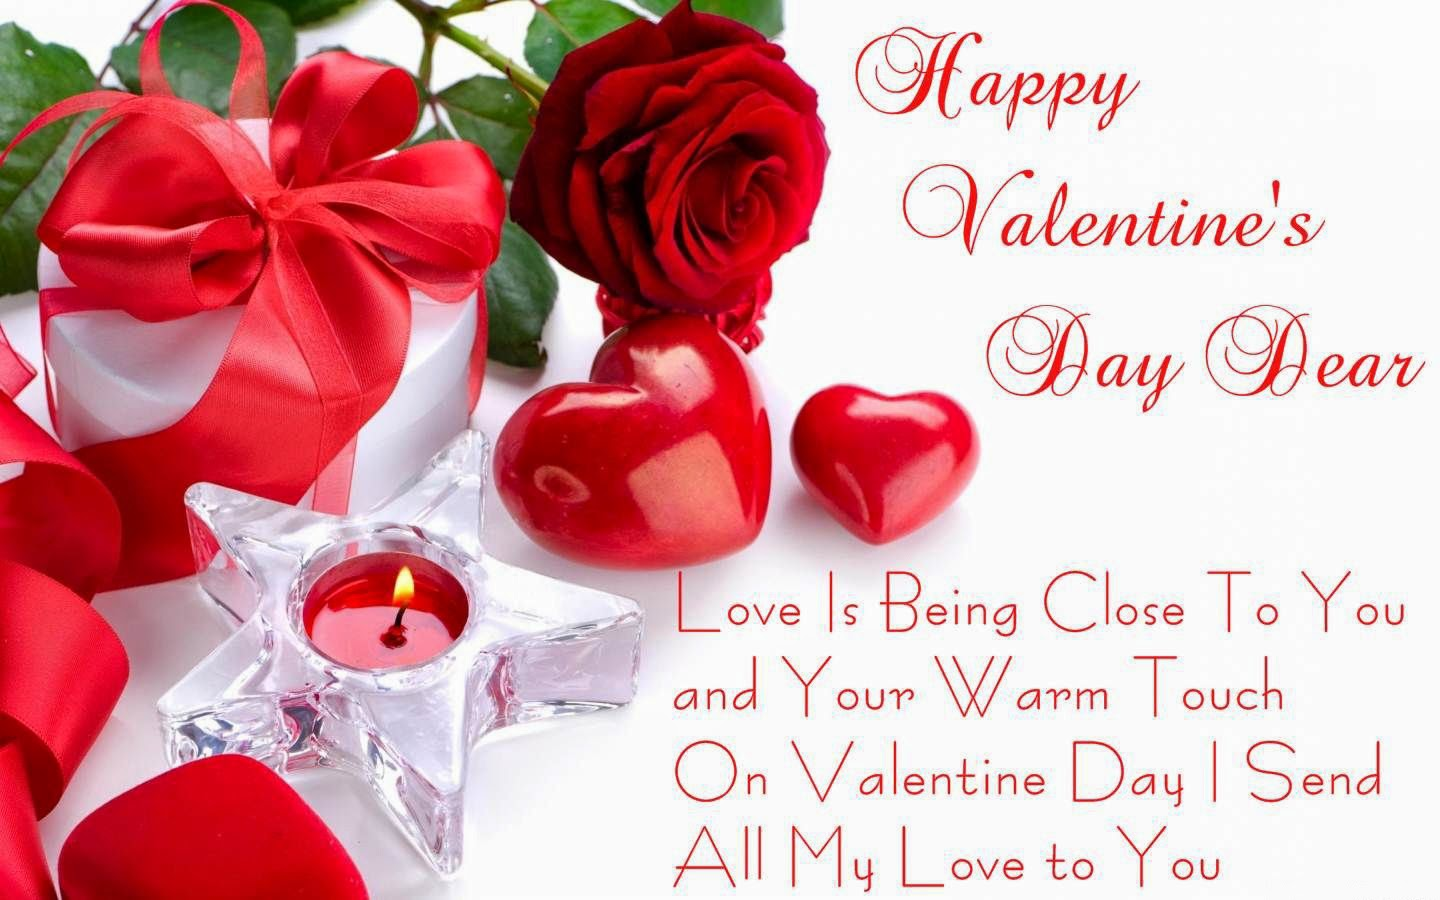 Love Quotes For Valentines Day Valentines Day Love Quotes  Quotes Of The Day